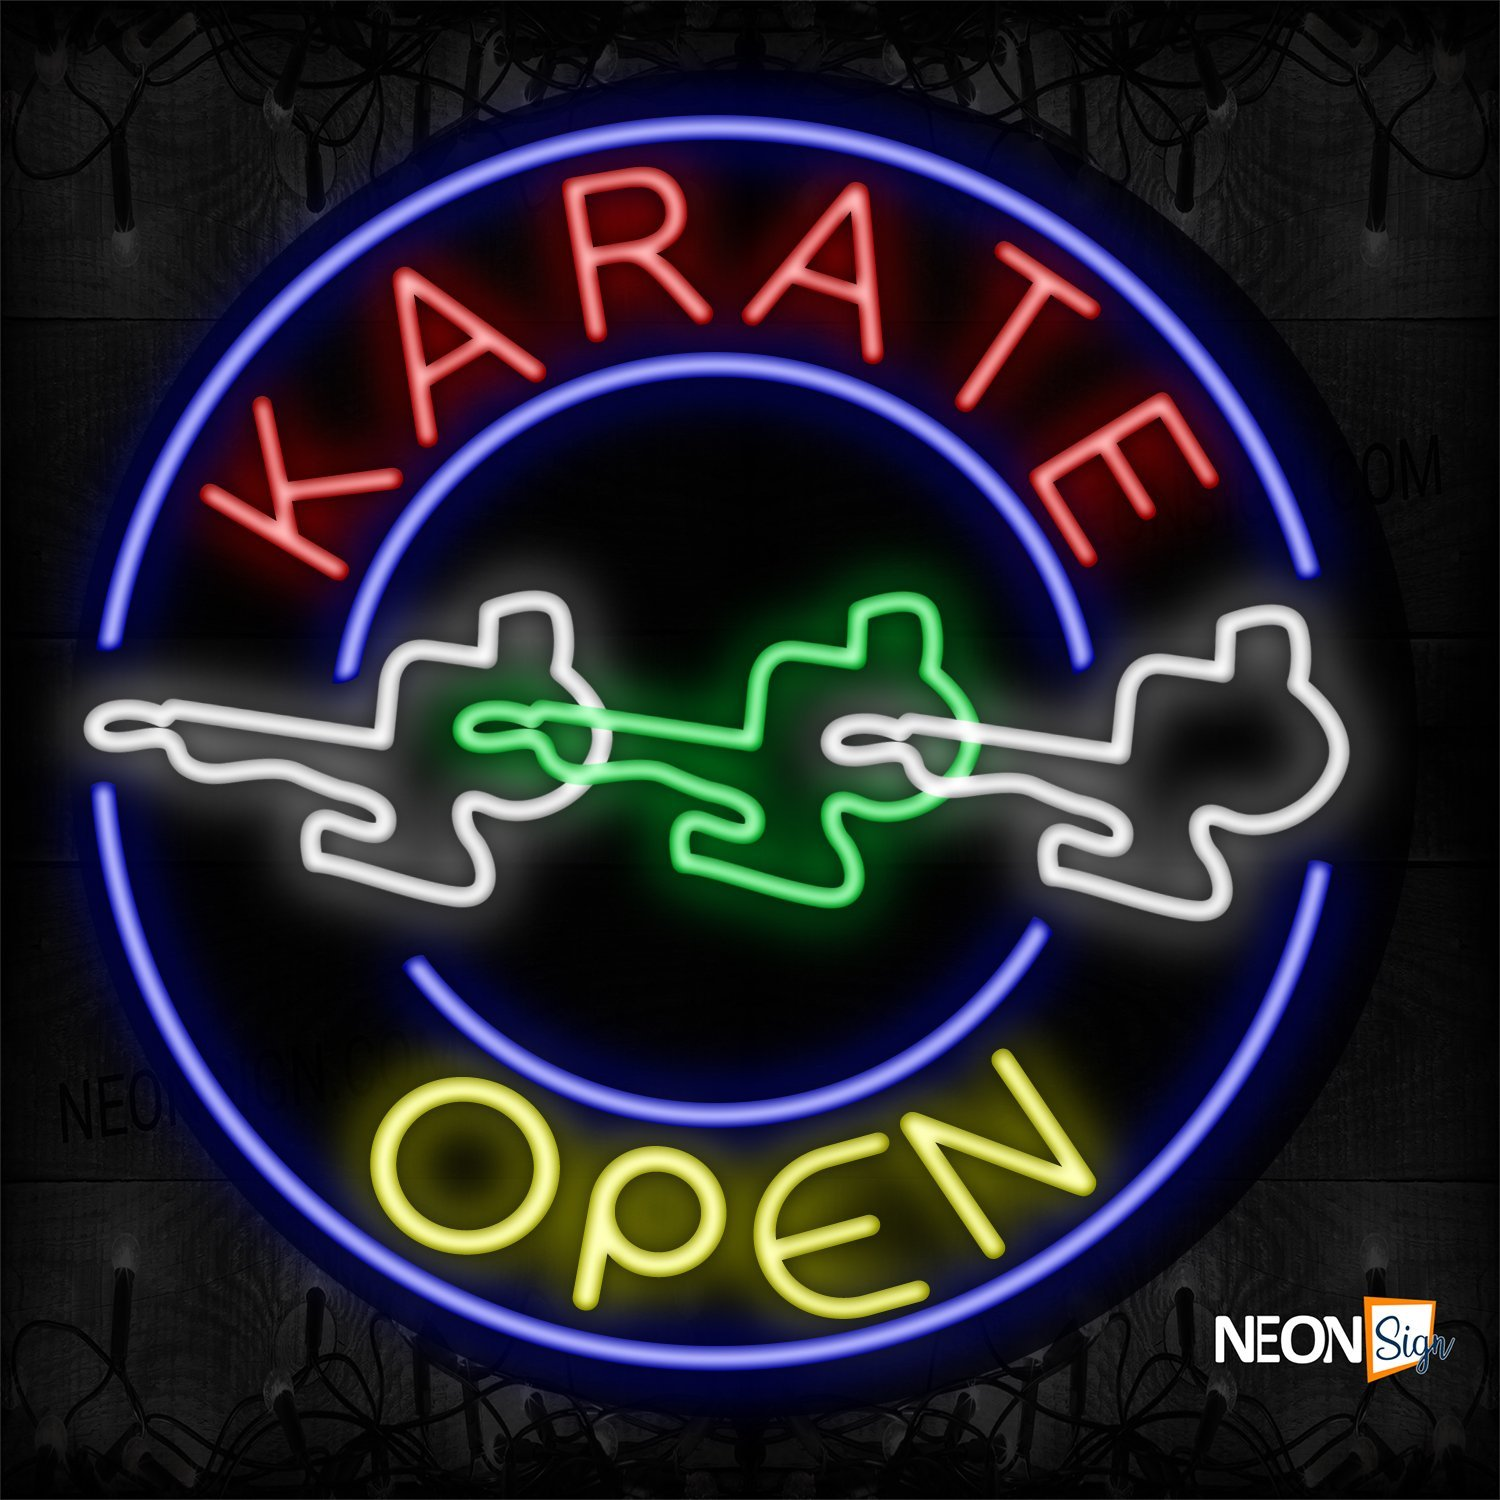 Image of 11154 Karate Open With Circle Border & Logo Neon Sign_26x326 Contoured Black Backing